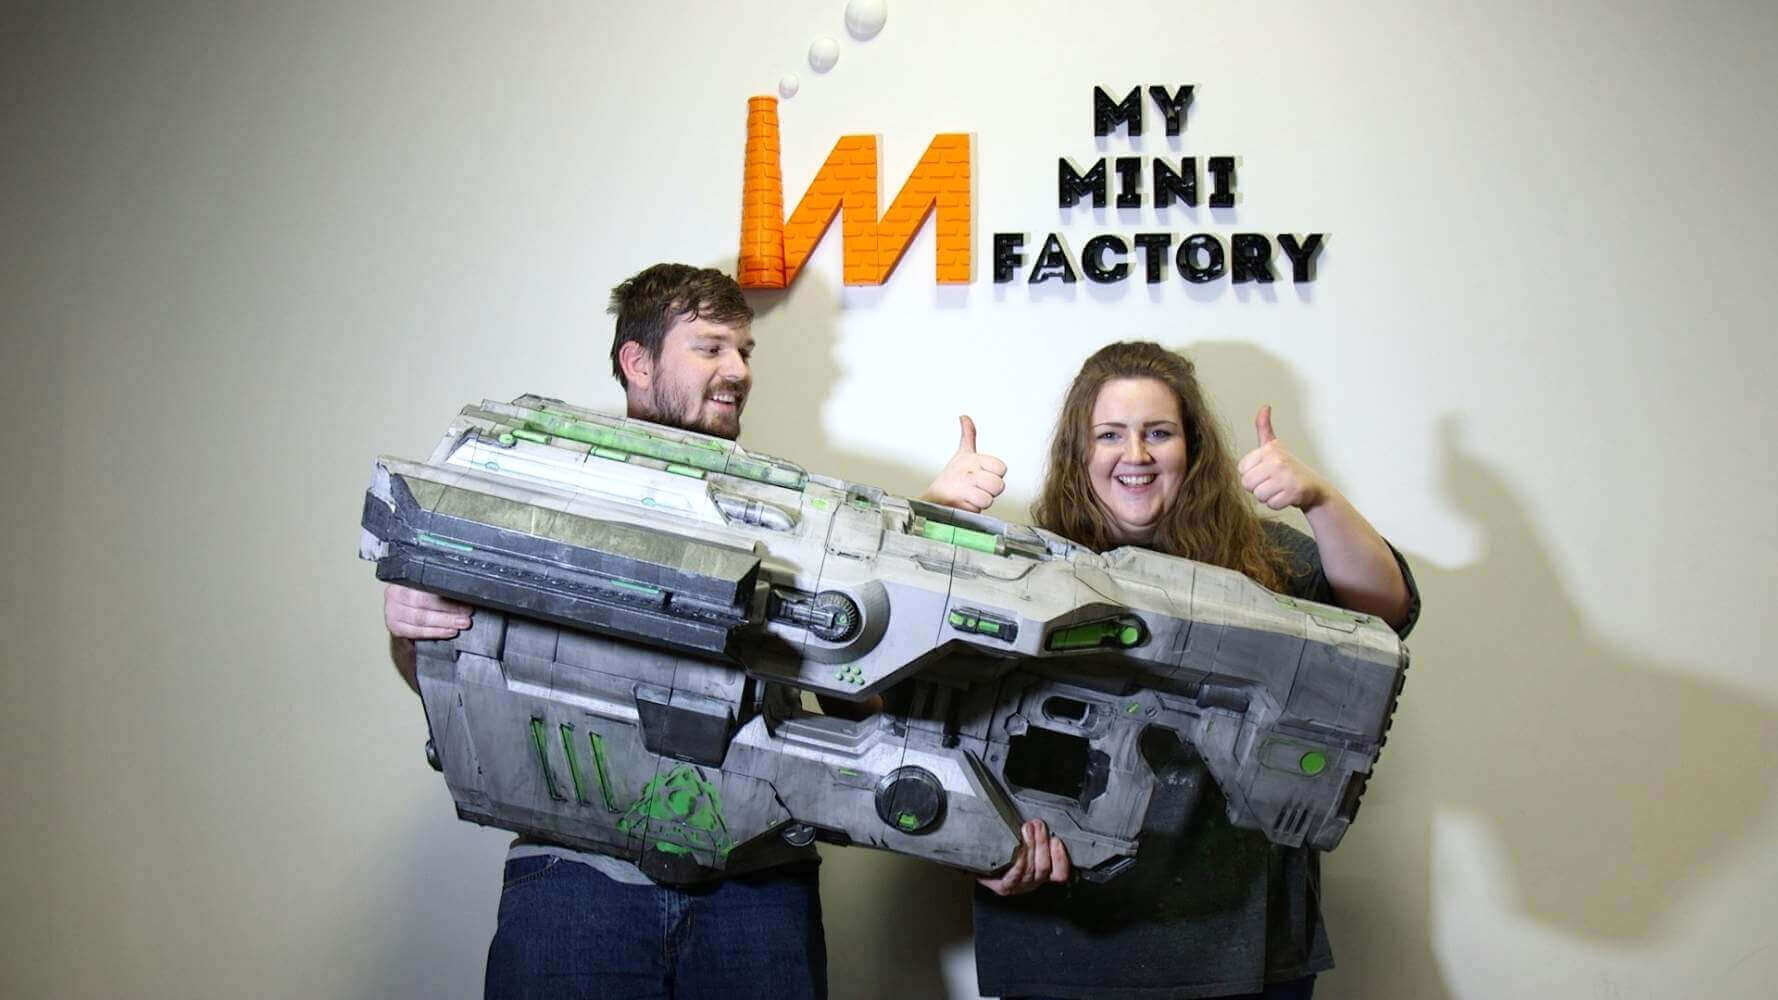 DOOM BFG Prop by MyMiniFactory used 20kg of Filament | All3DP